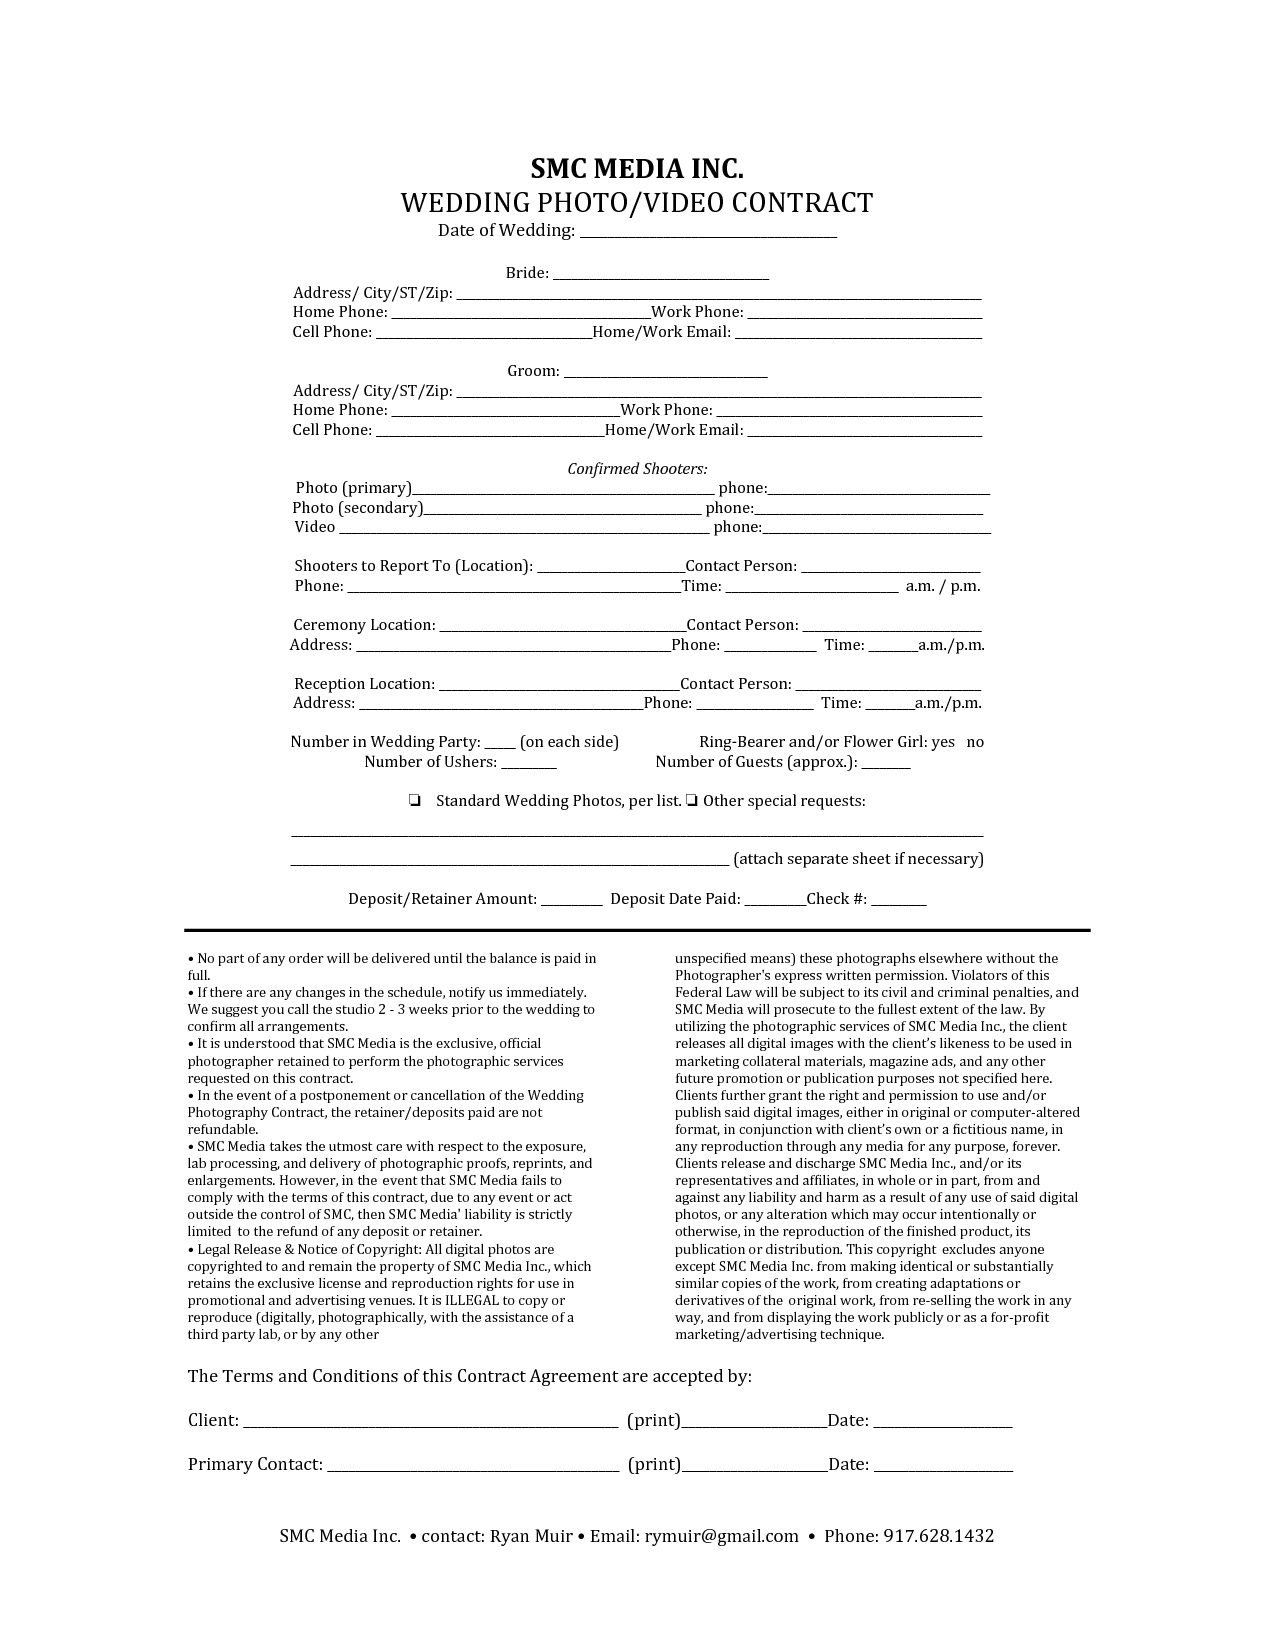 wedding photography contract template free printable documents. Black Bedroom Furniture Sets. Home Design Ideas